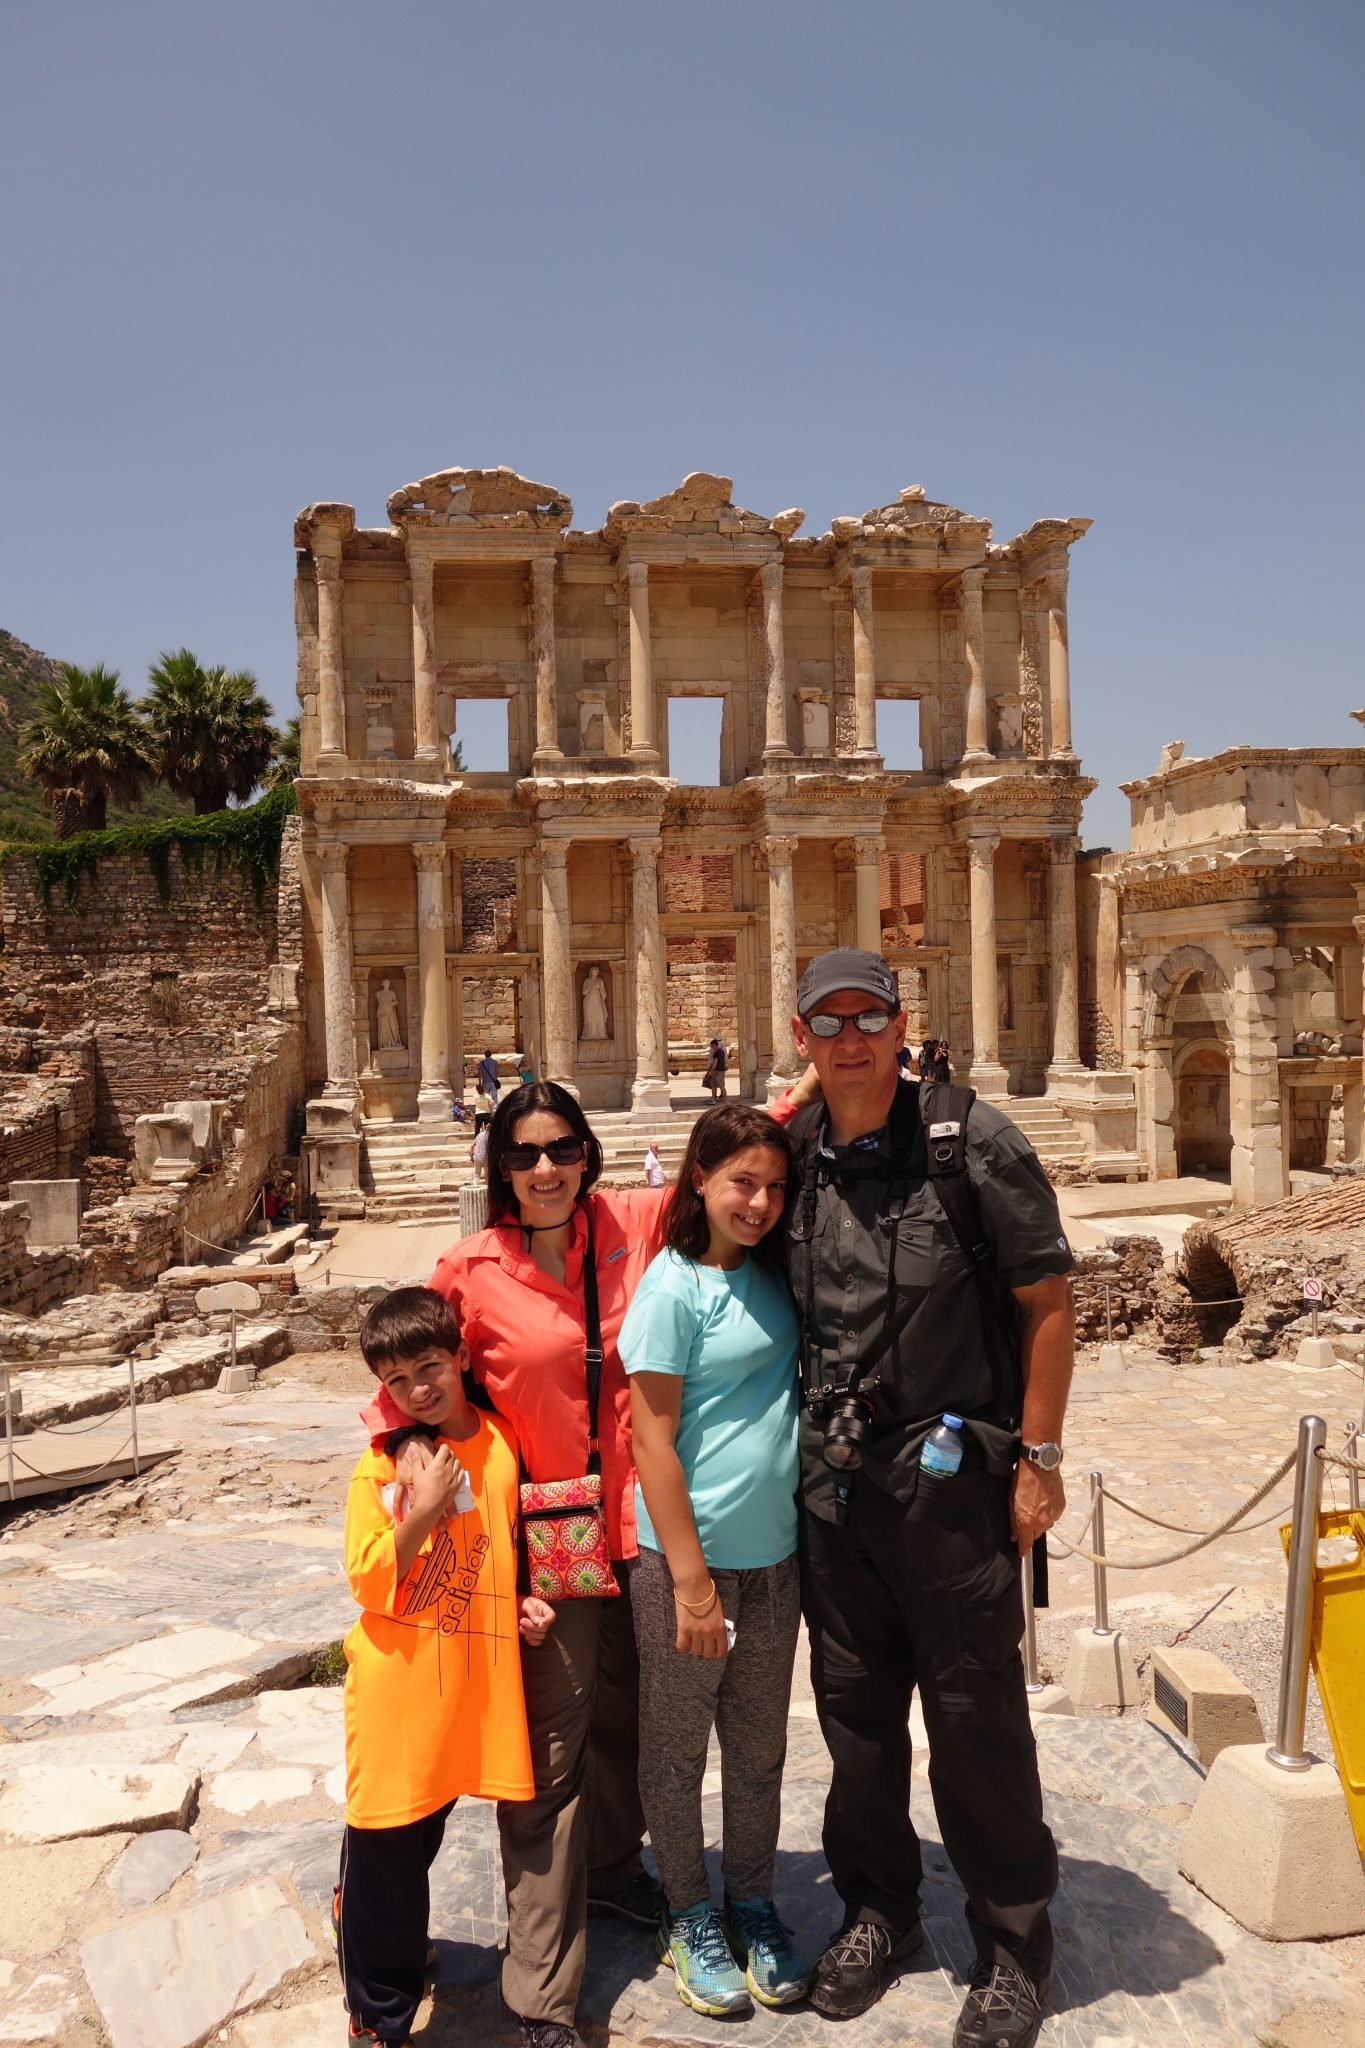 turkey photo essay family adventure the educational tourist i hope the turkey photo essay was inspiring is turkey on your travel bucket list